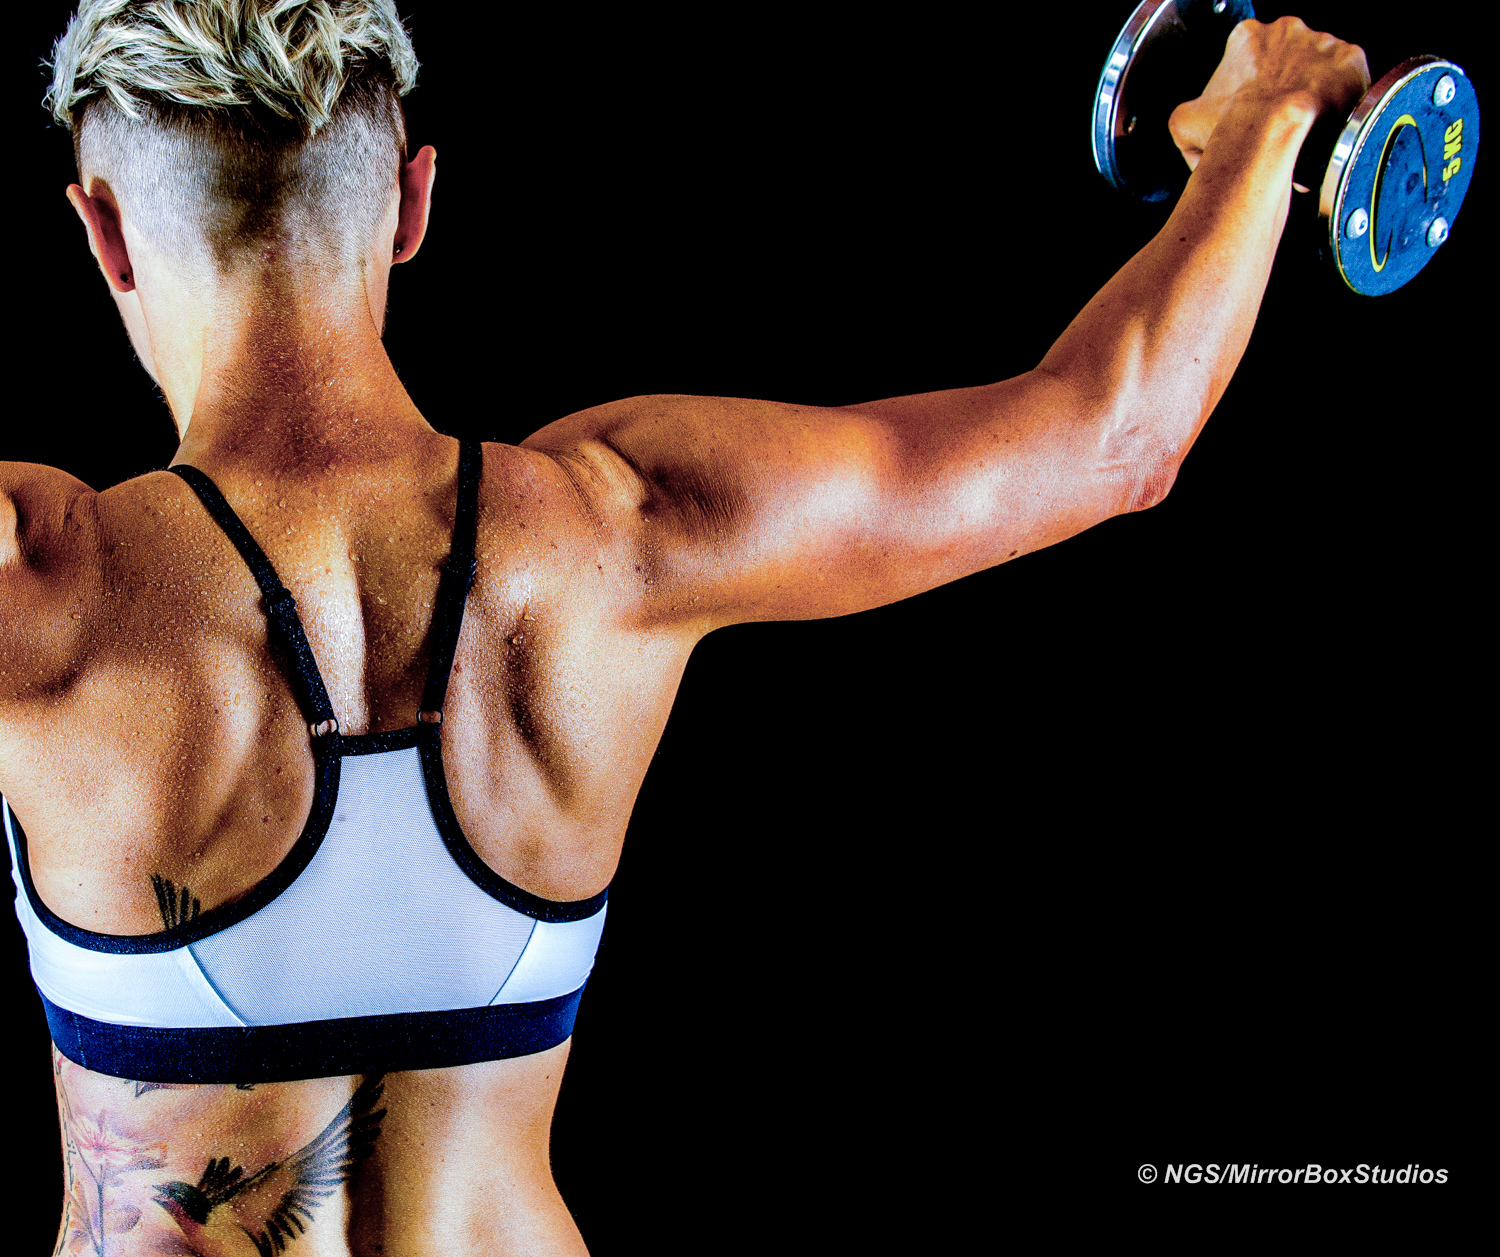 Sarah_Powell_Gym_Shoot_13_06_16__4253_©NGS-MBS